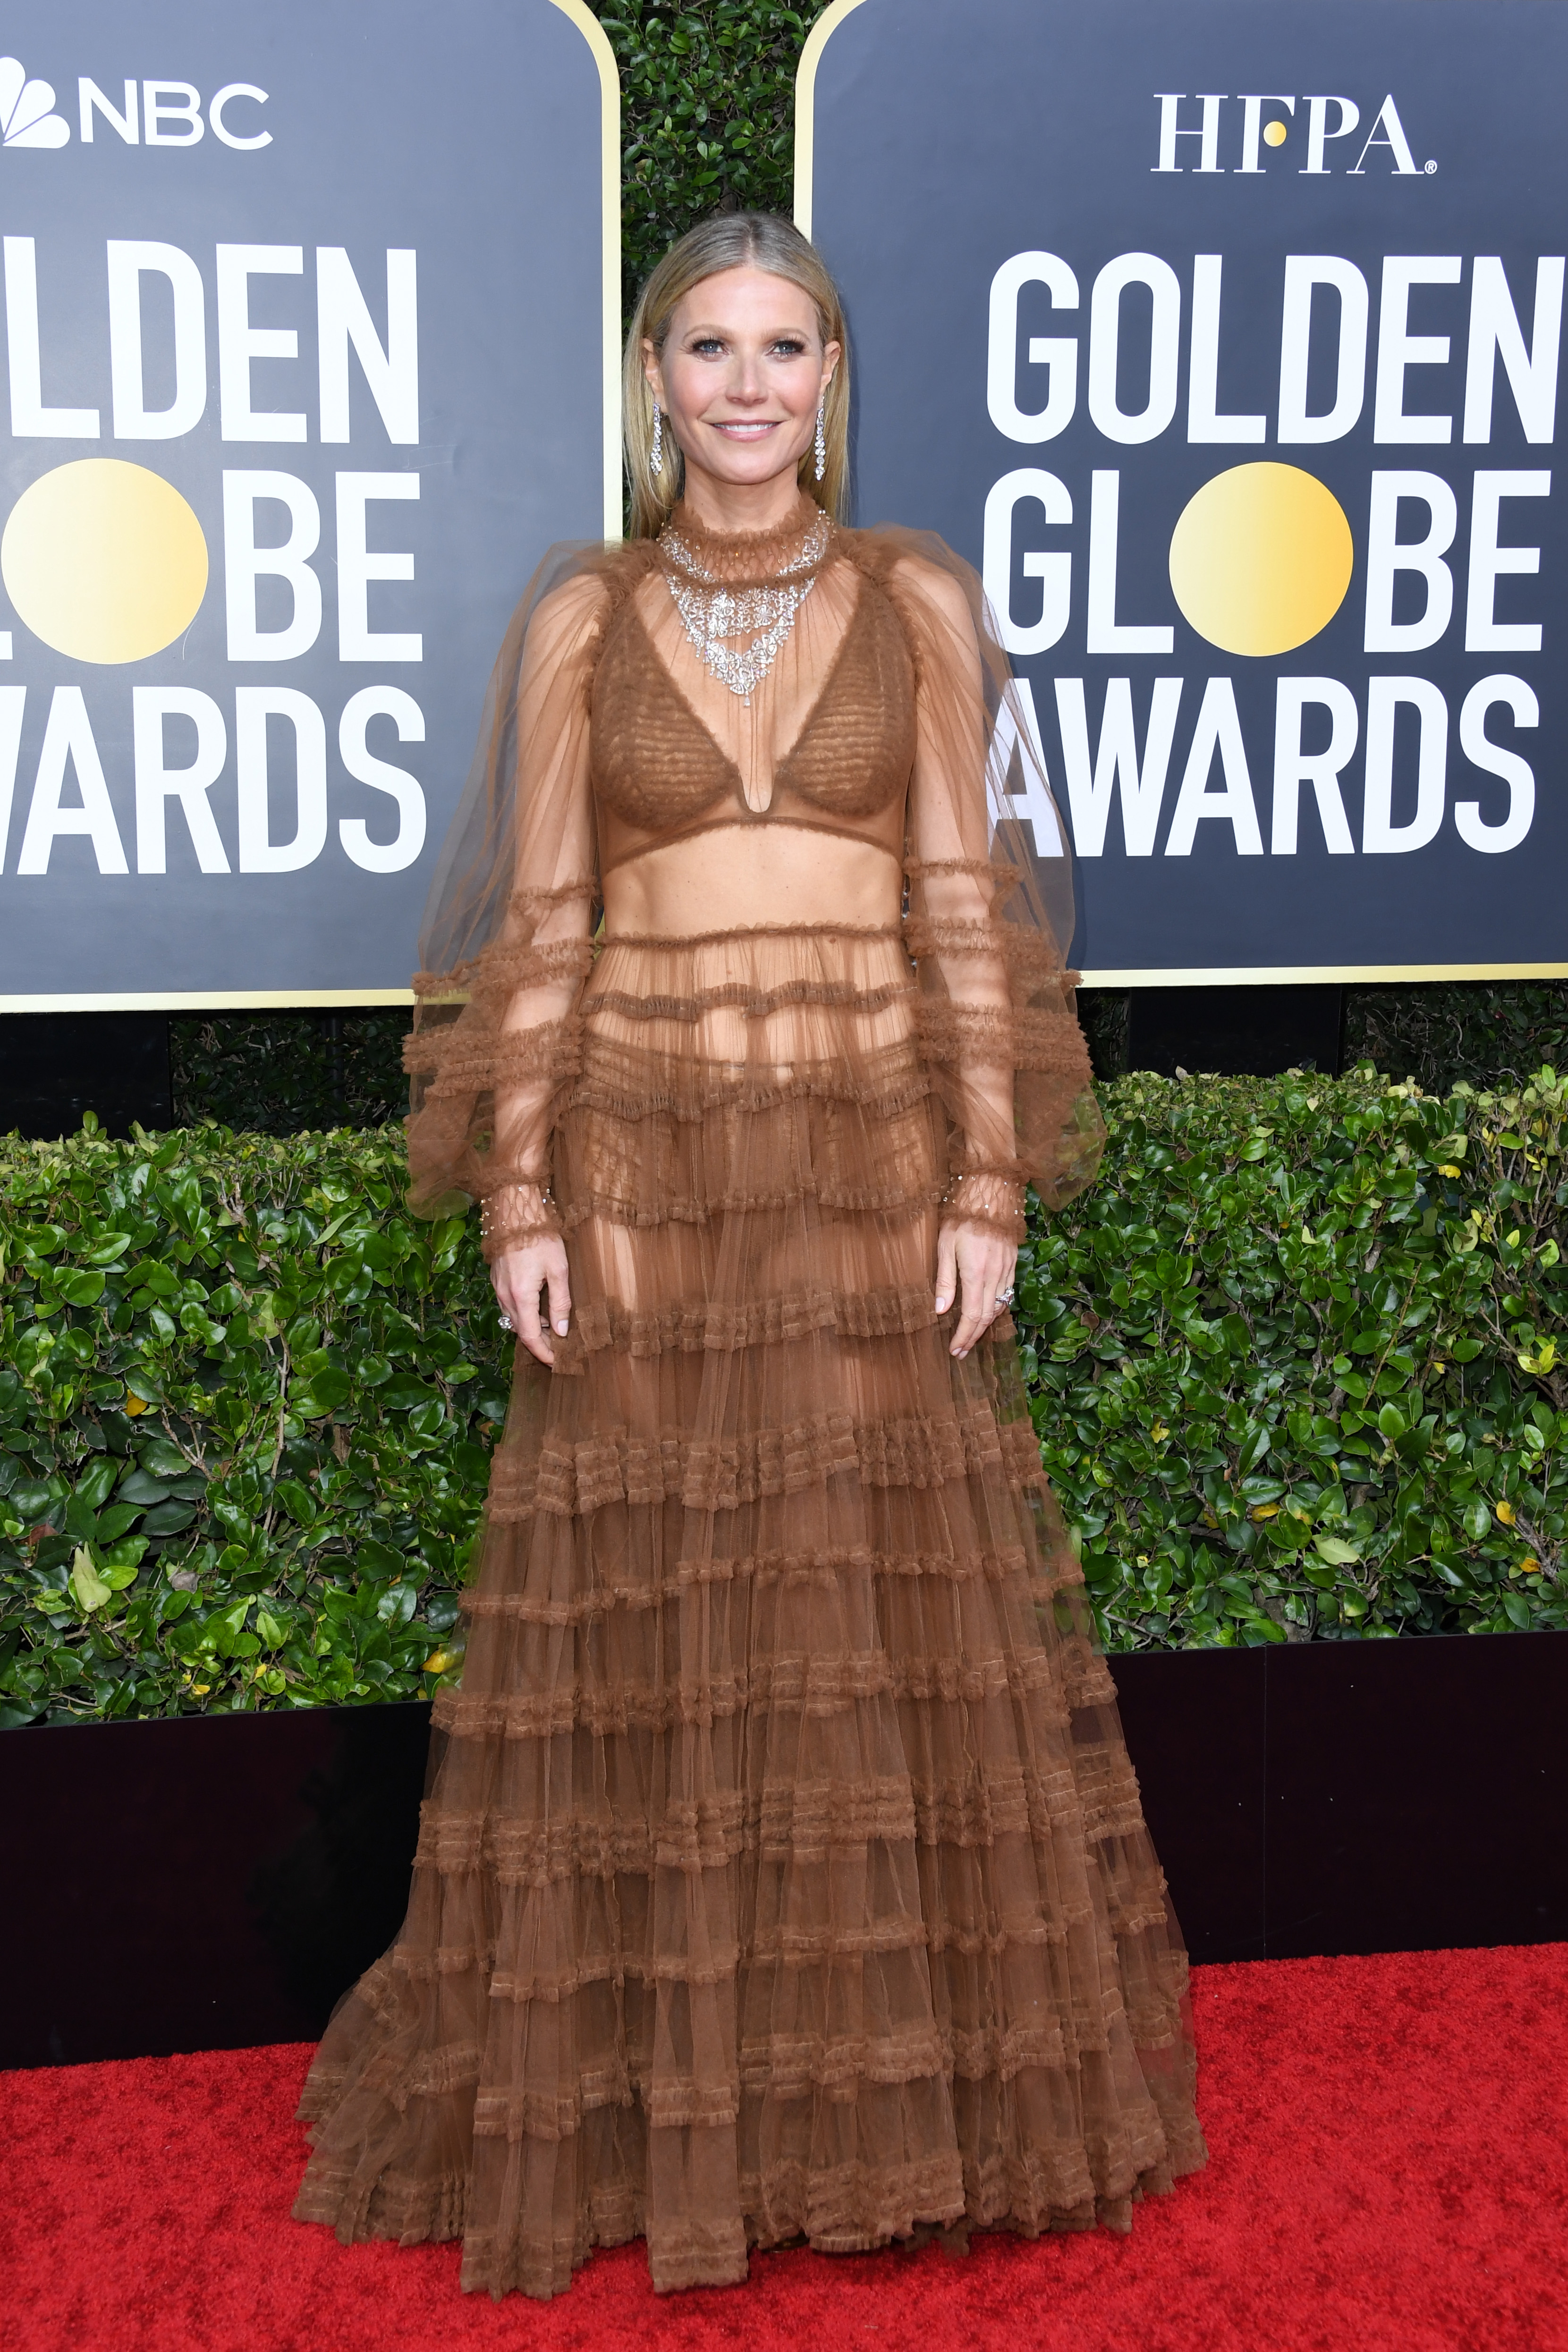 BEVERLY HILLS, CALIFORNIA - JANUARY 05: Gwyneth Paltrow attends the 77th Annual Golden Globe Awards at The Beverly Hilton Hotel on January 05, 2020 in Beverly Hills, California. (Photo by Jon Kopaloff/Getty Images)